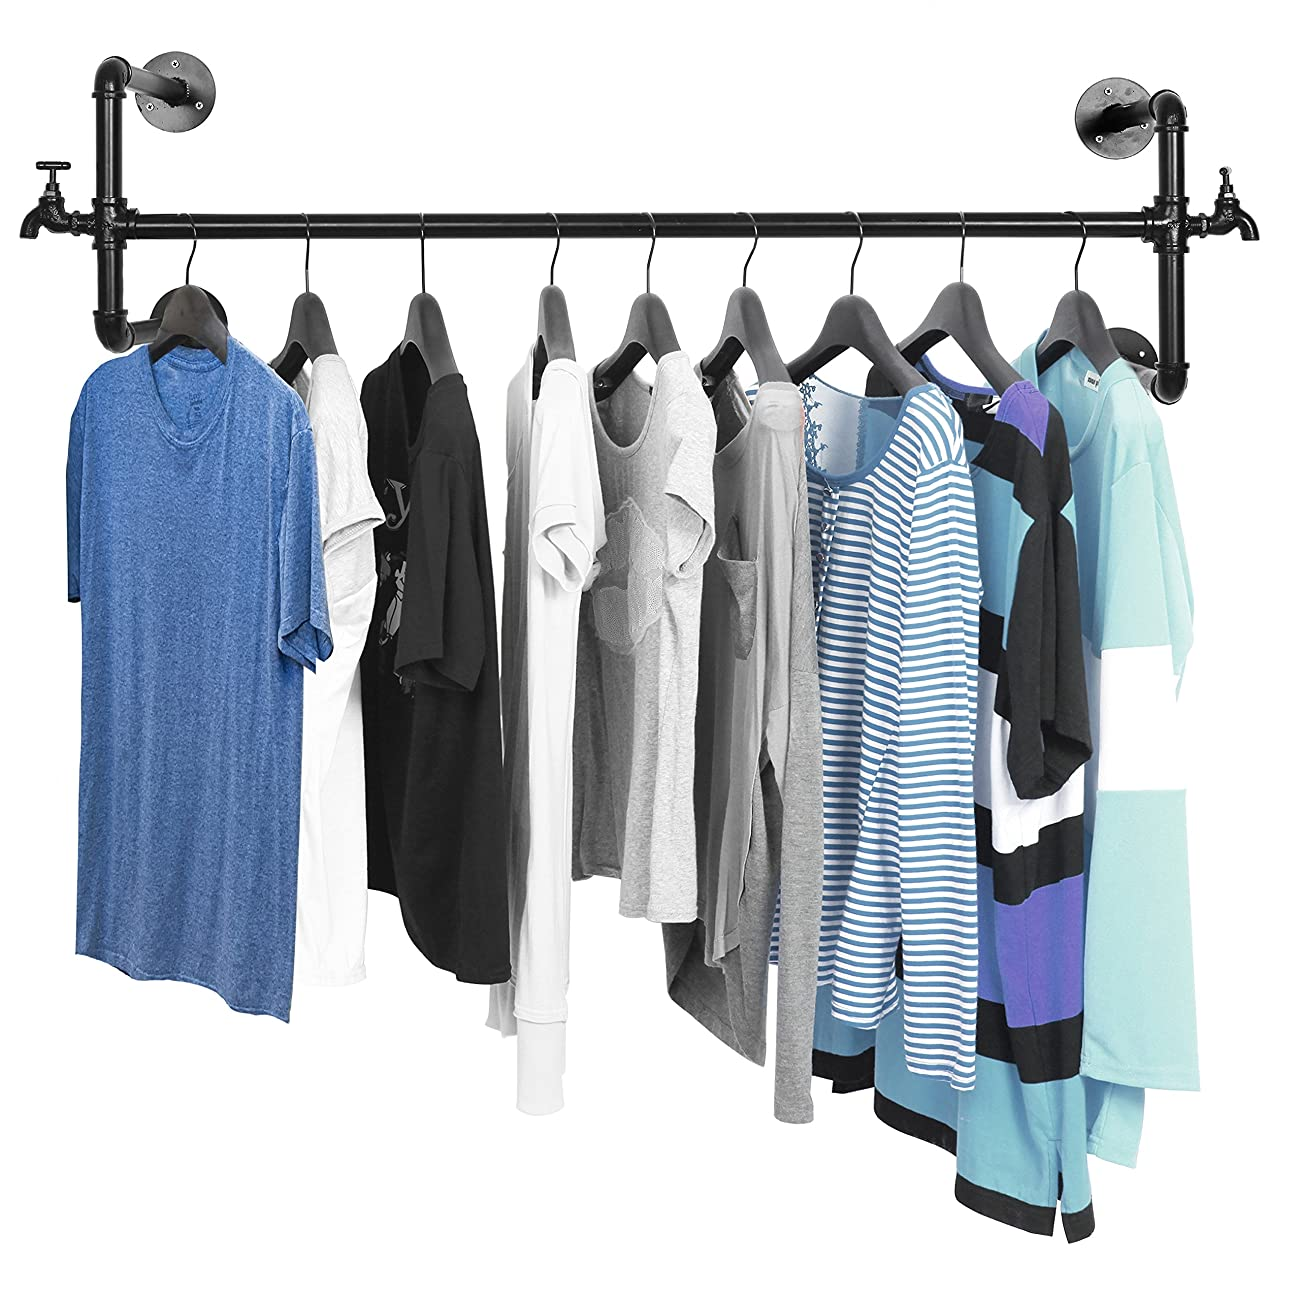 Black Metal Wall Mounted Faucet Design Closet Rod Garment Rack / Hanging Clothes Bar Display - MyGift® 0